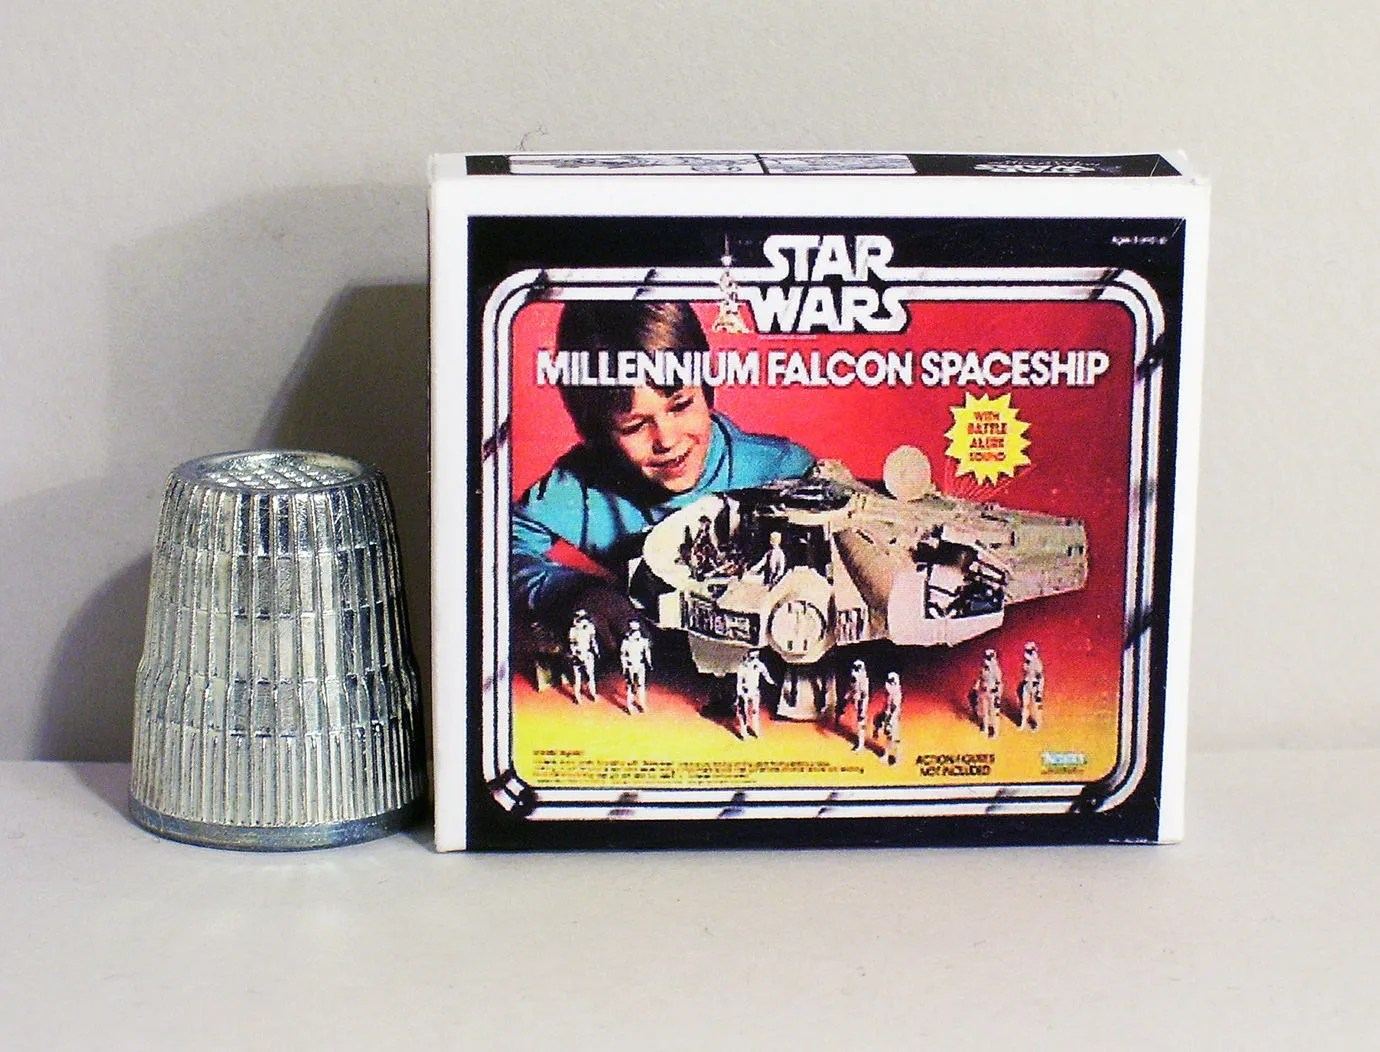 Star Wars House Items Star Wars Millennium Falcon Spaceship Box Dollhouse Miniature 1 12 Scale Dollhouse Accessory 1970s 1980s Dollhouse Boy Toy Box